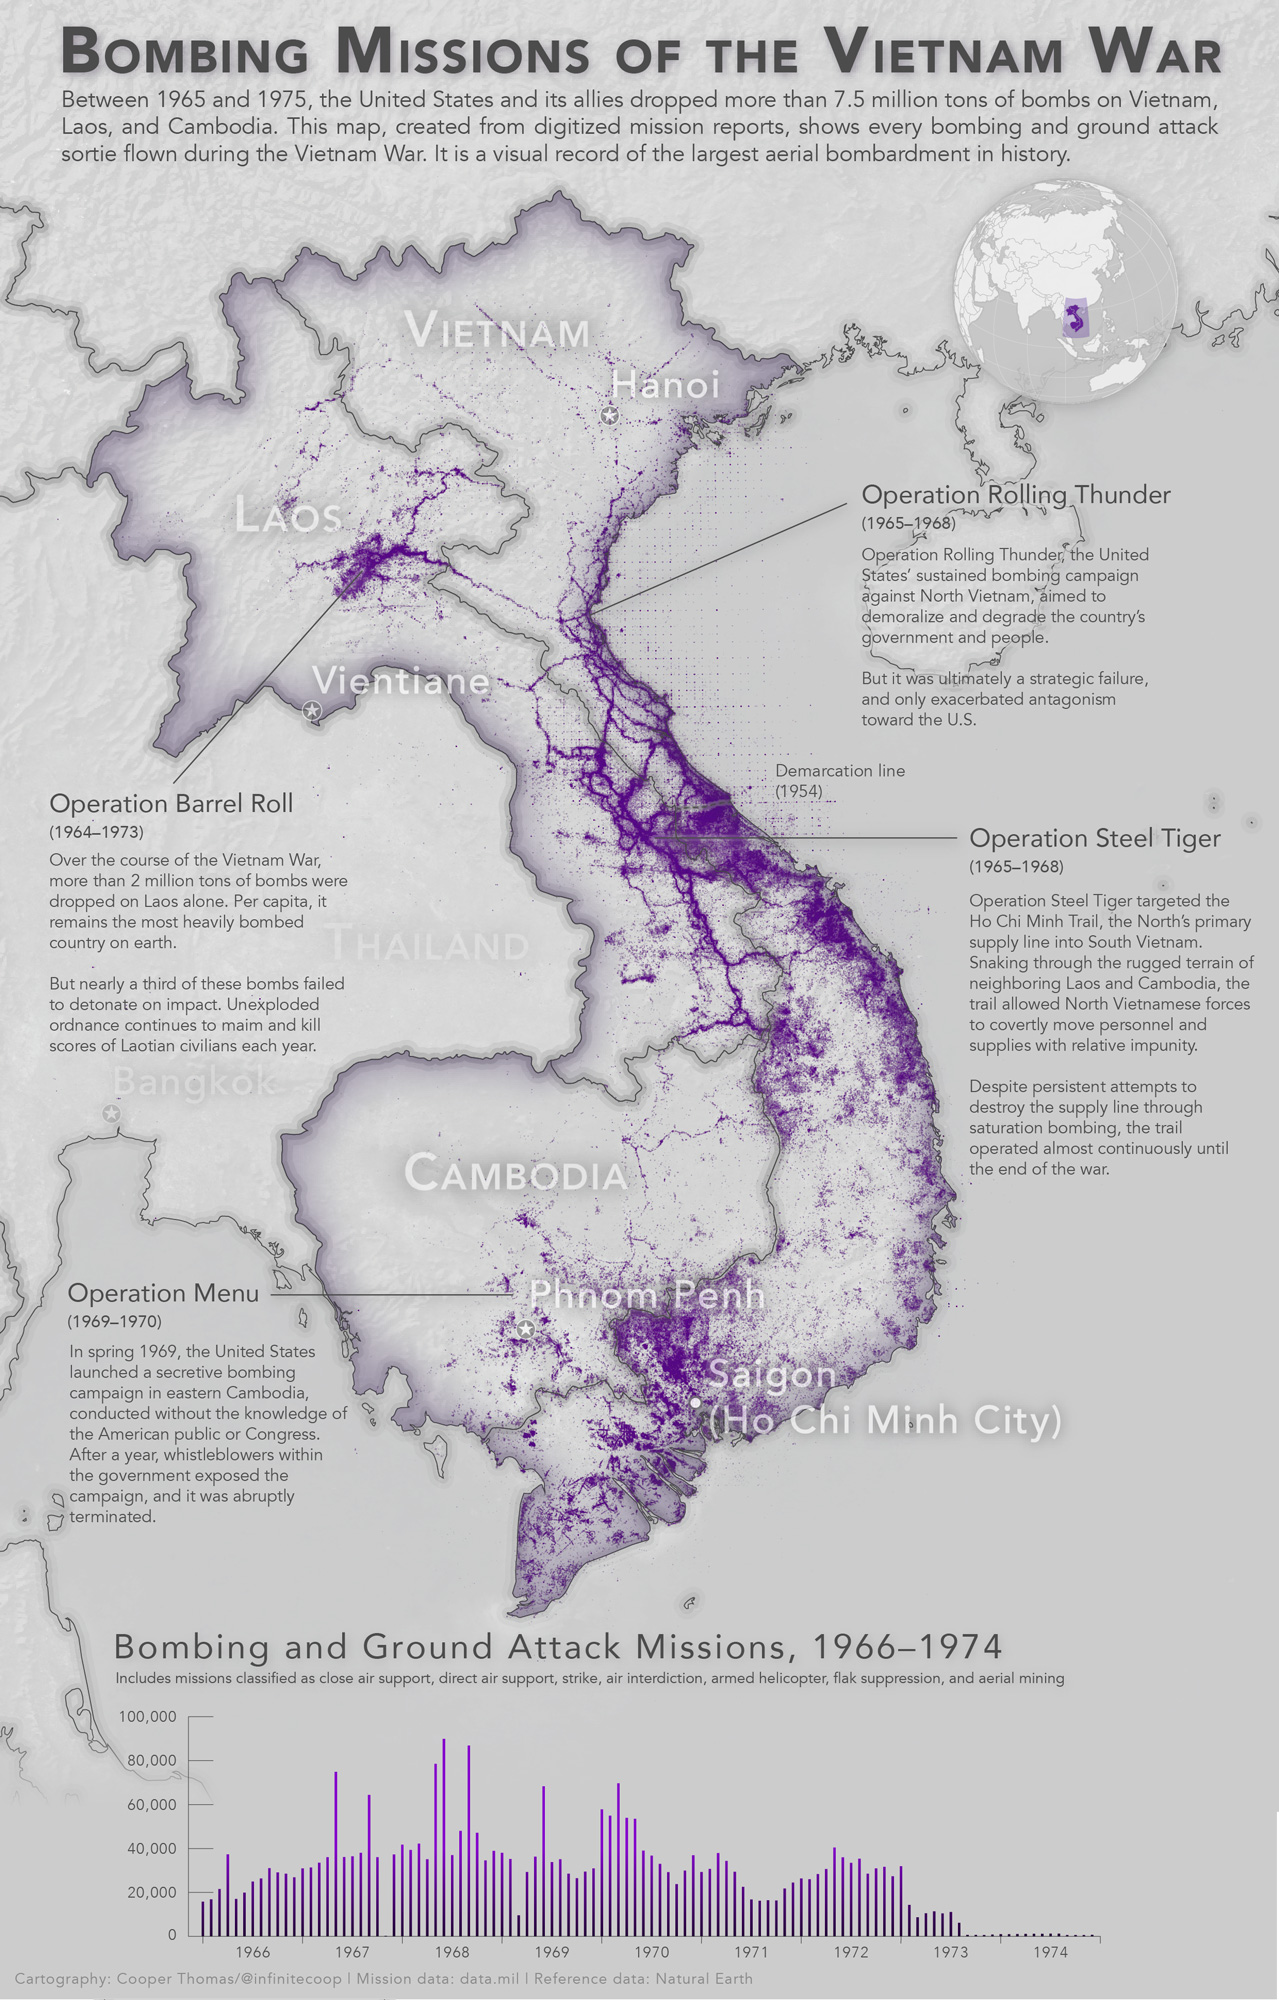 Bombing missions of the Vietnam War (QGIS version)